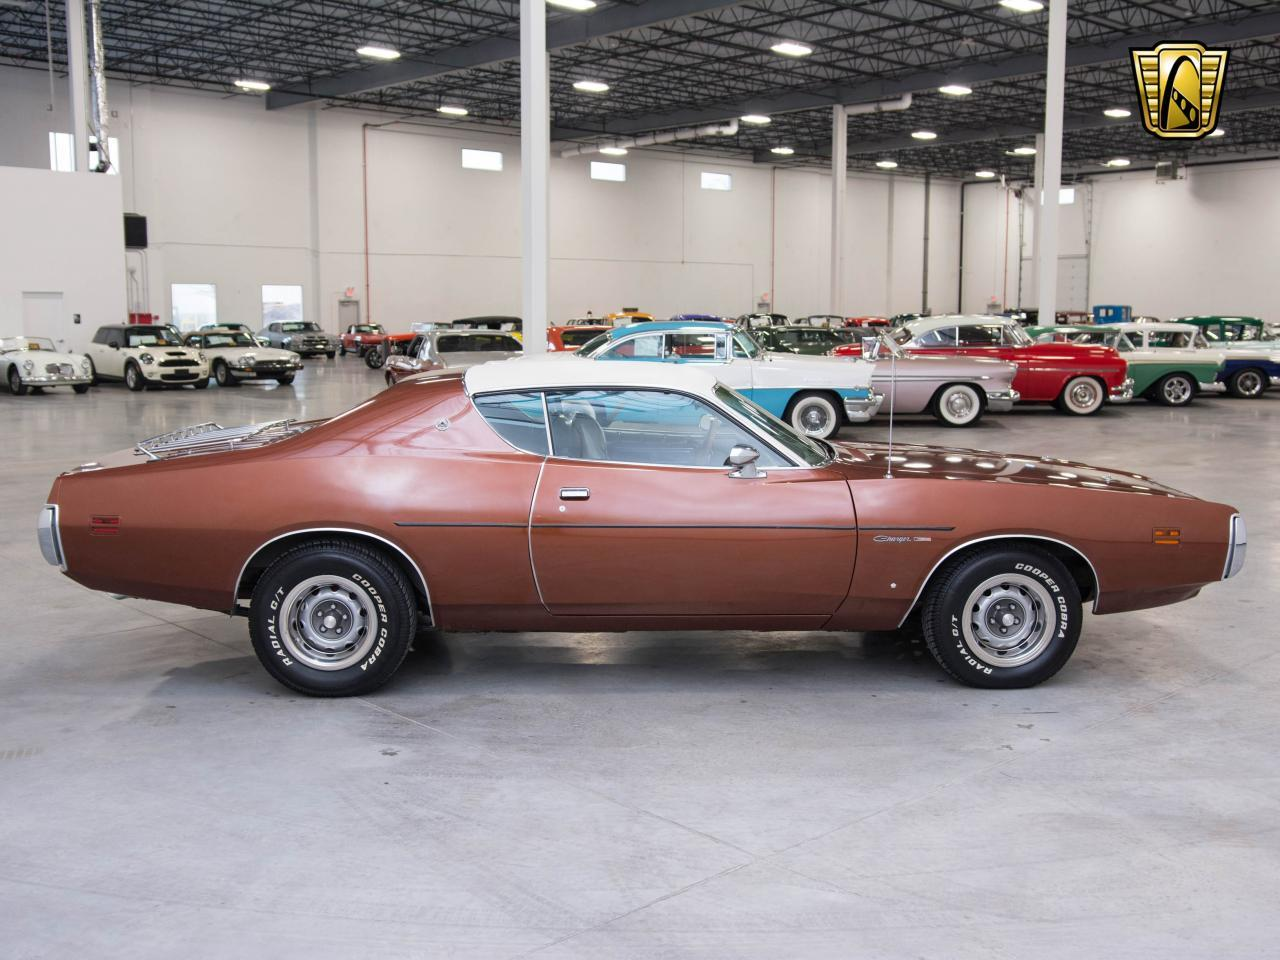 Large Picture of Classic 1971 Charger located in Kenosha Wisconsin - $29,995.00 Offered by Gateway Classic Cars - Milwaukee - KEDX